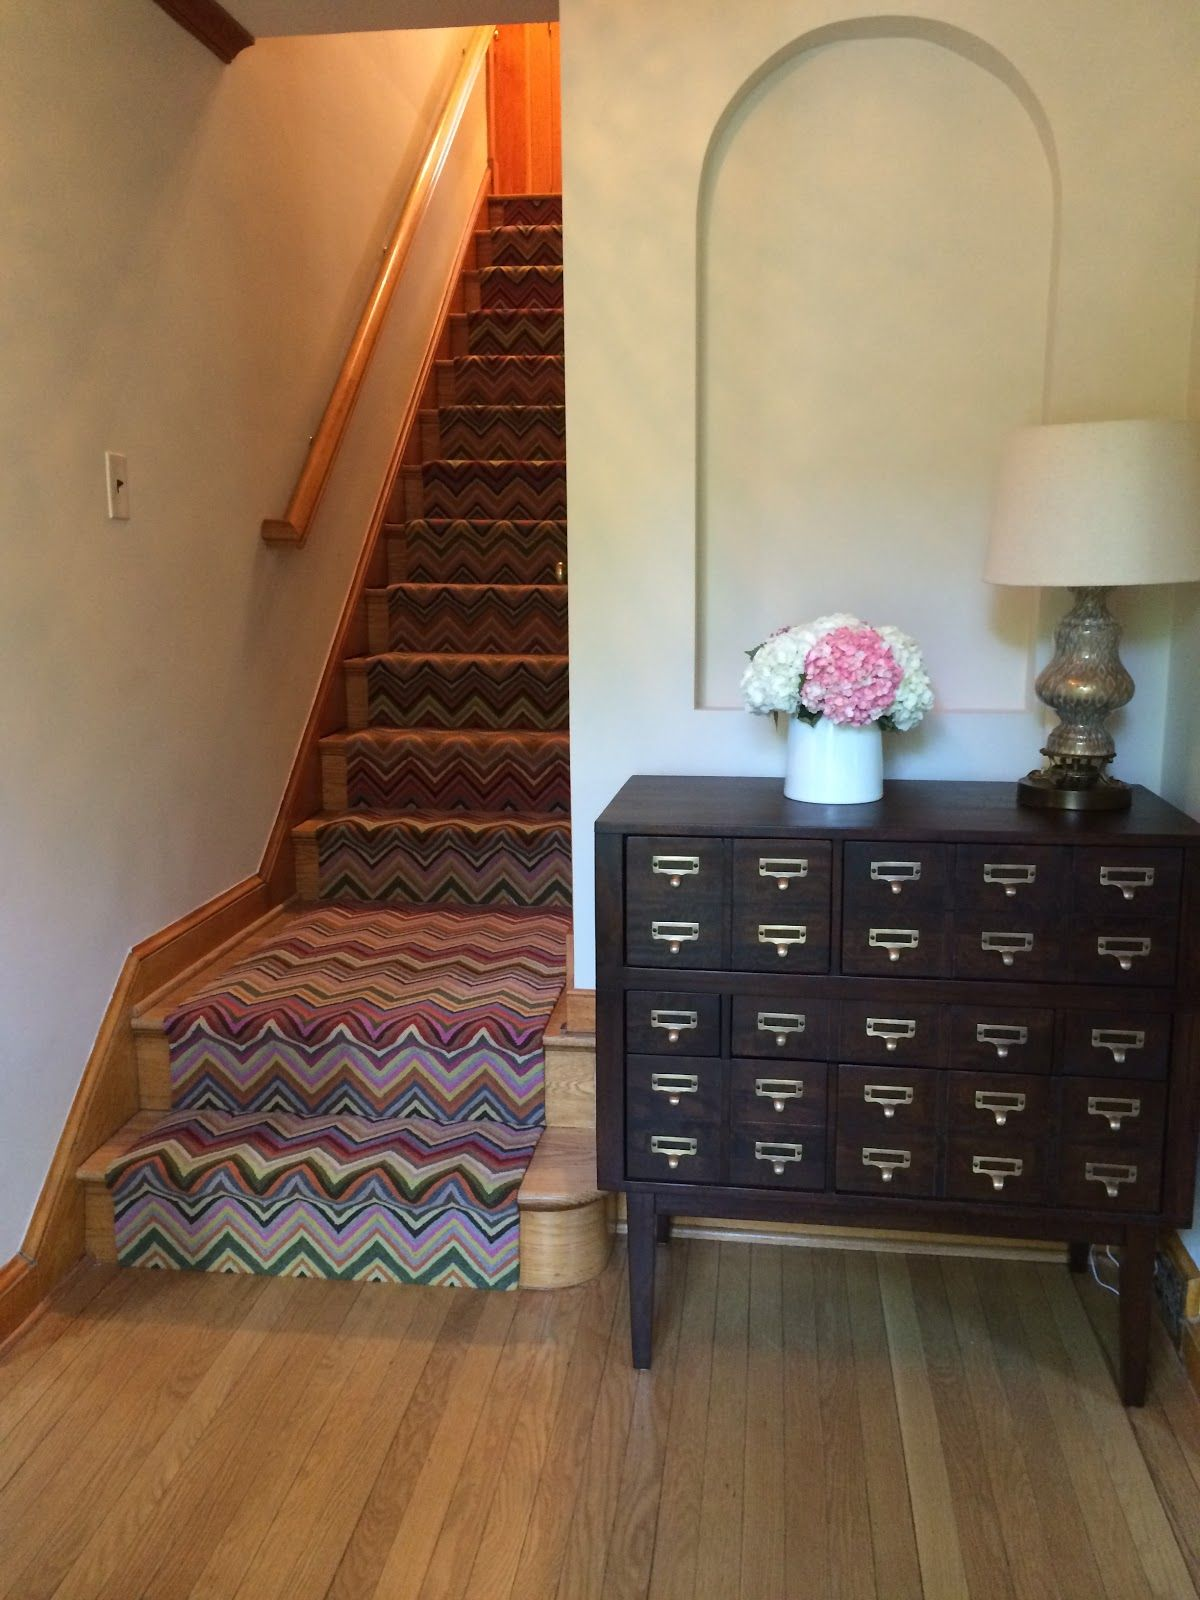 Best Stair Runner Installation Married To G*Ng*R Stair Runner 400 x 300